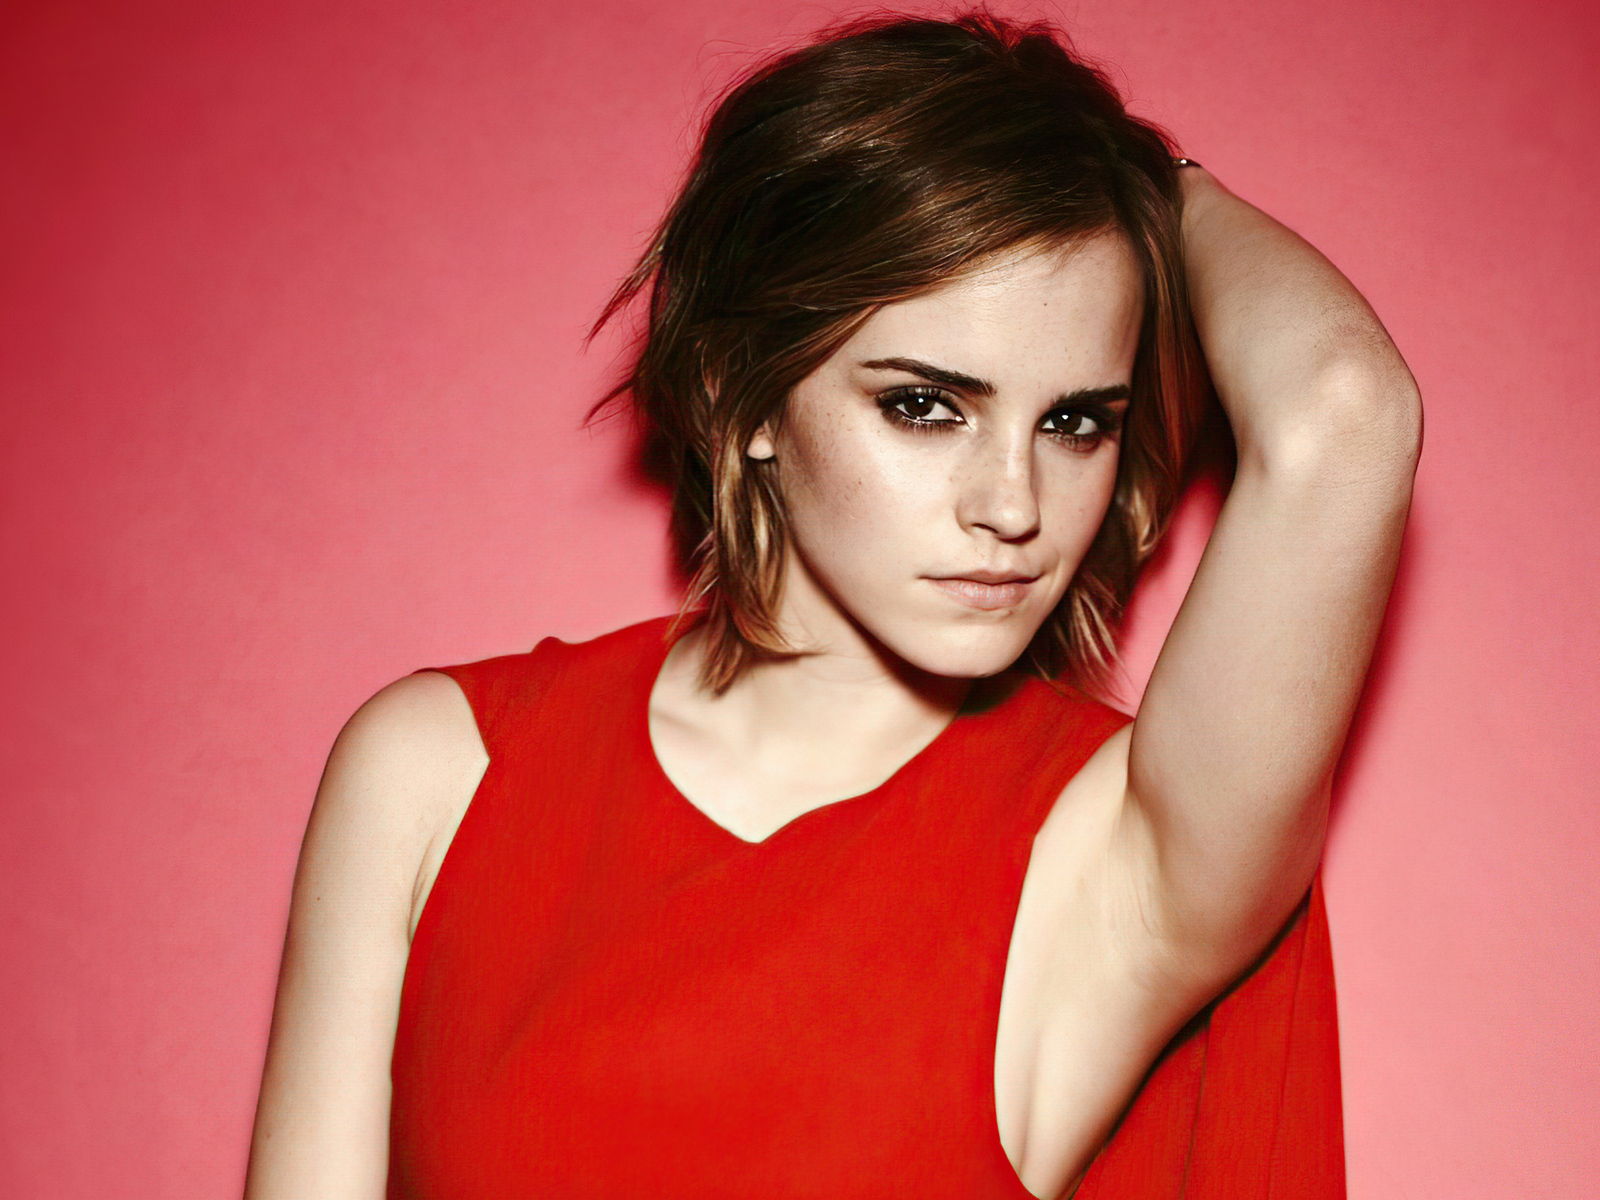 emma-watson-short-hair-red-dress-4k-ih.jpg